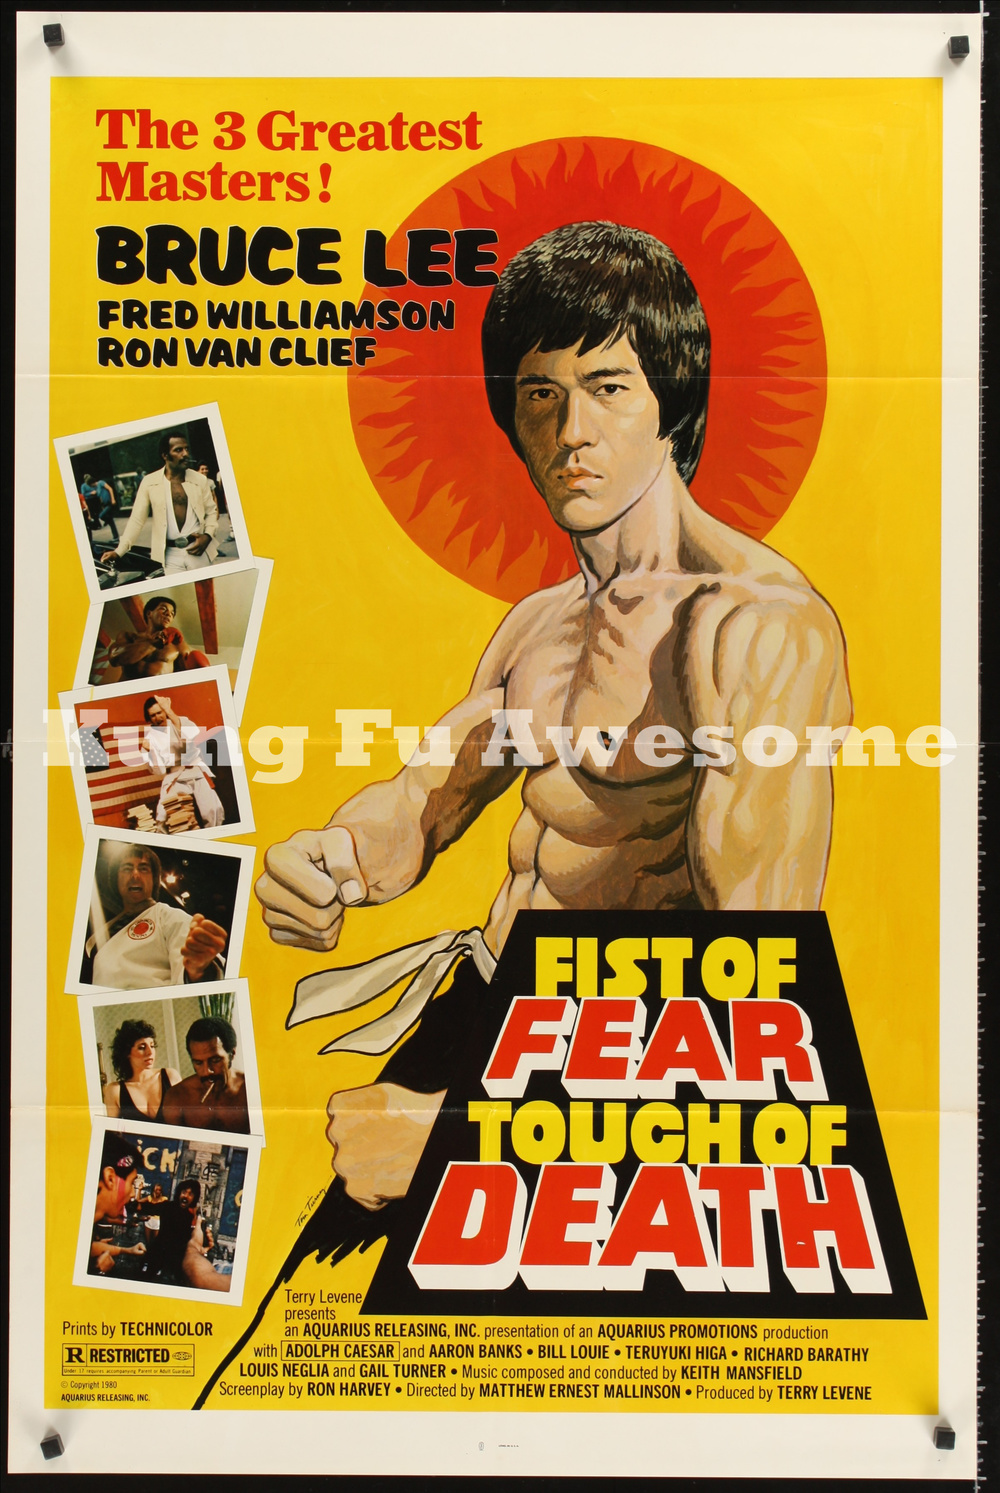 fist_of_fear_touch_of_death_JC01435_L.jpg